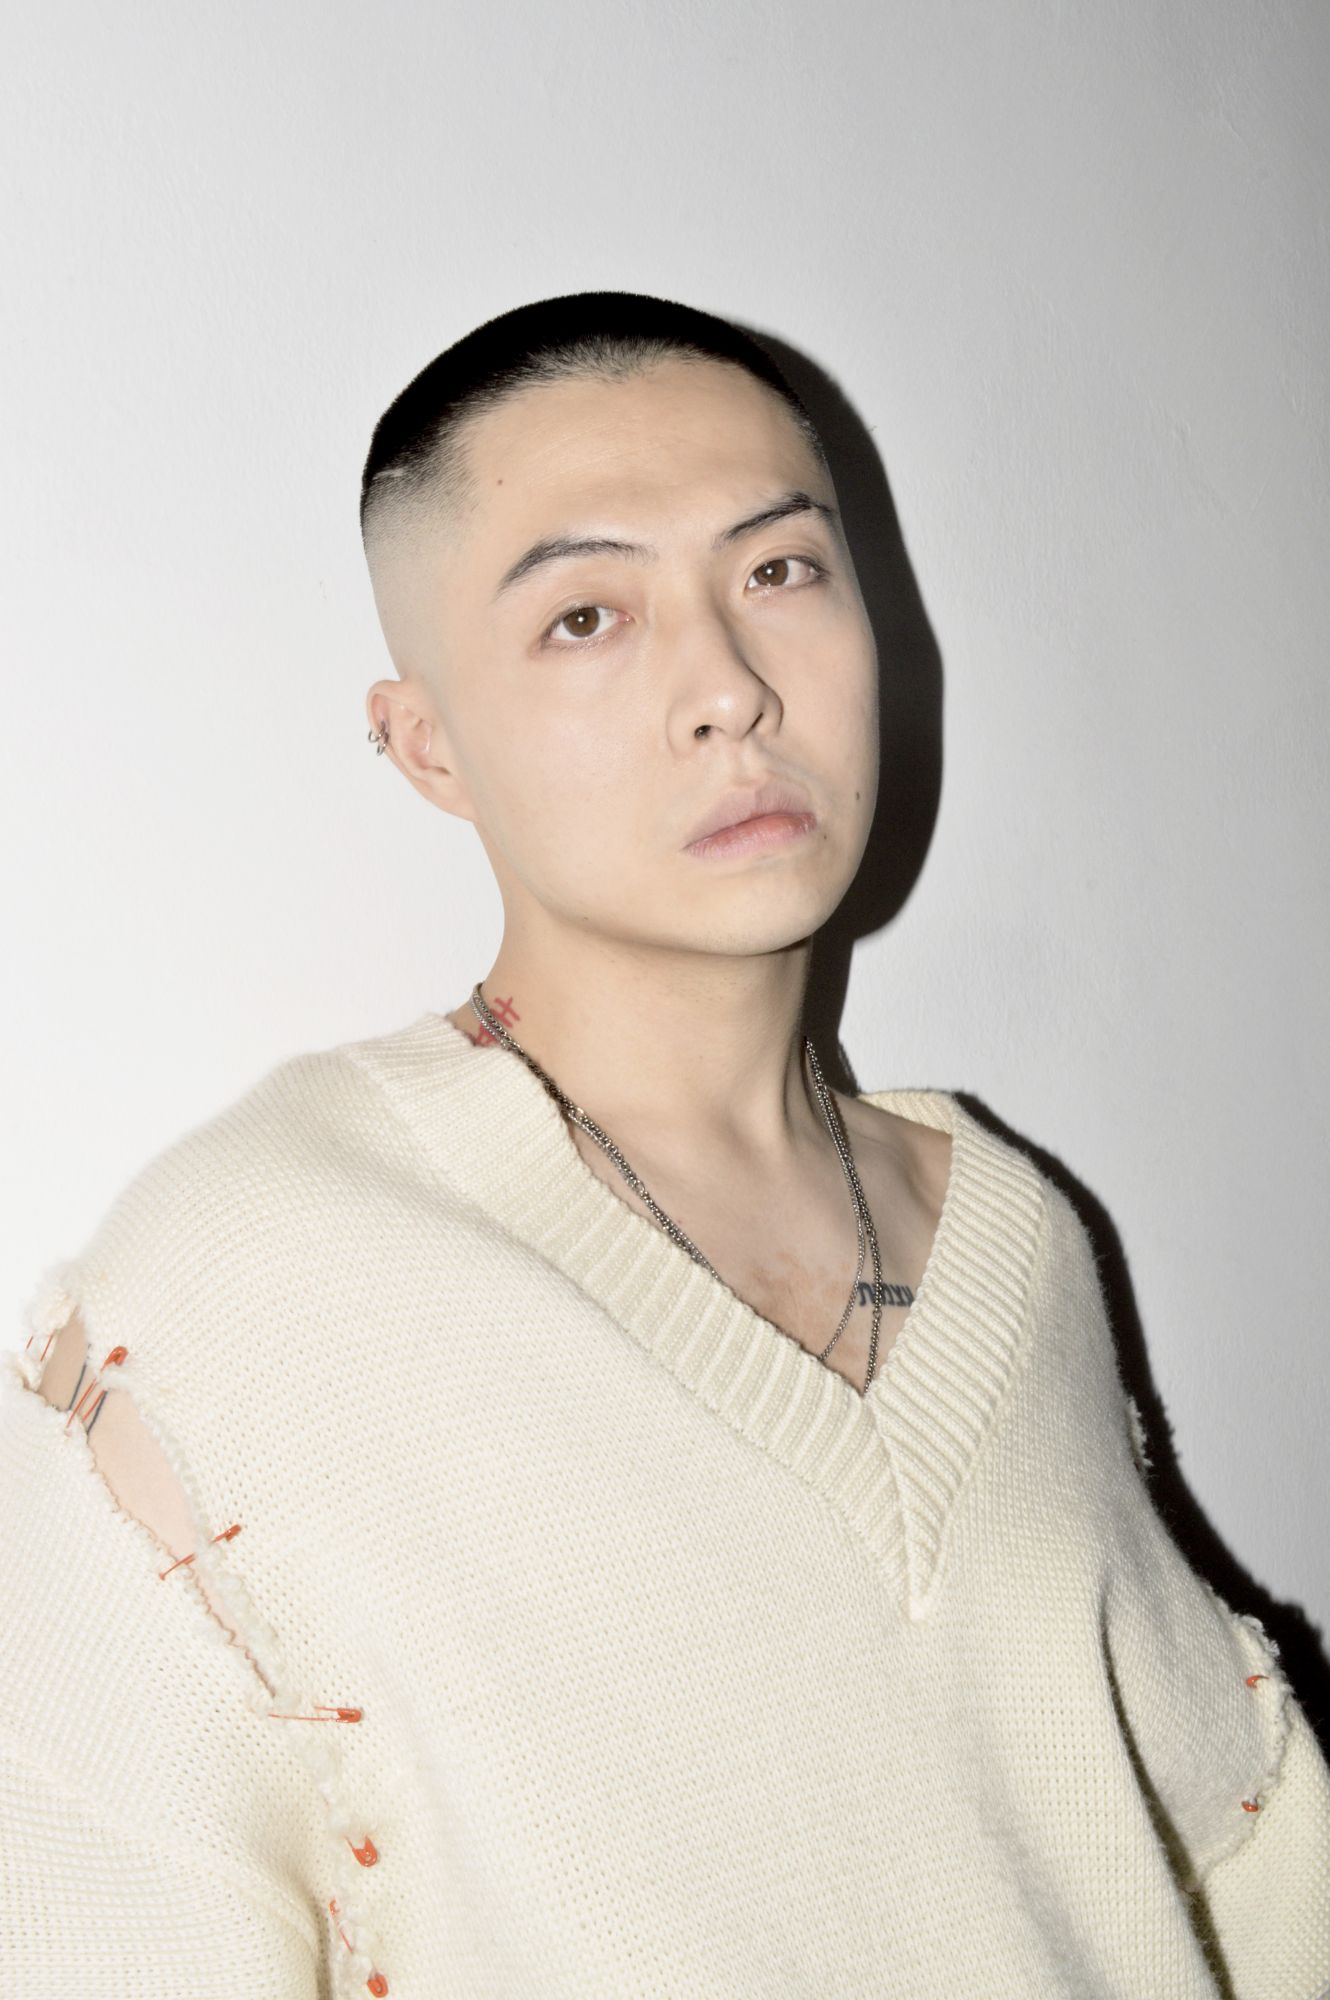 Rising Malaysian Musician NYK Talks Challenges During The Pandemic & His New EP